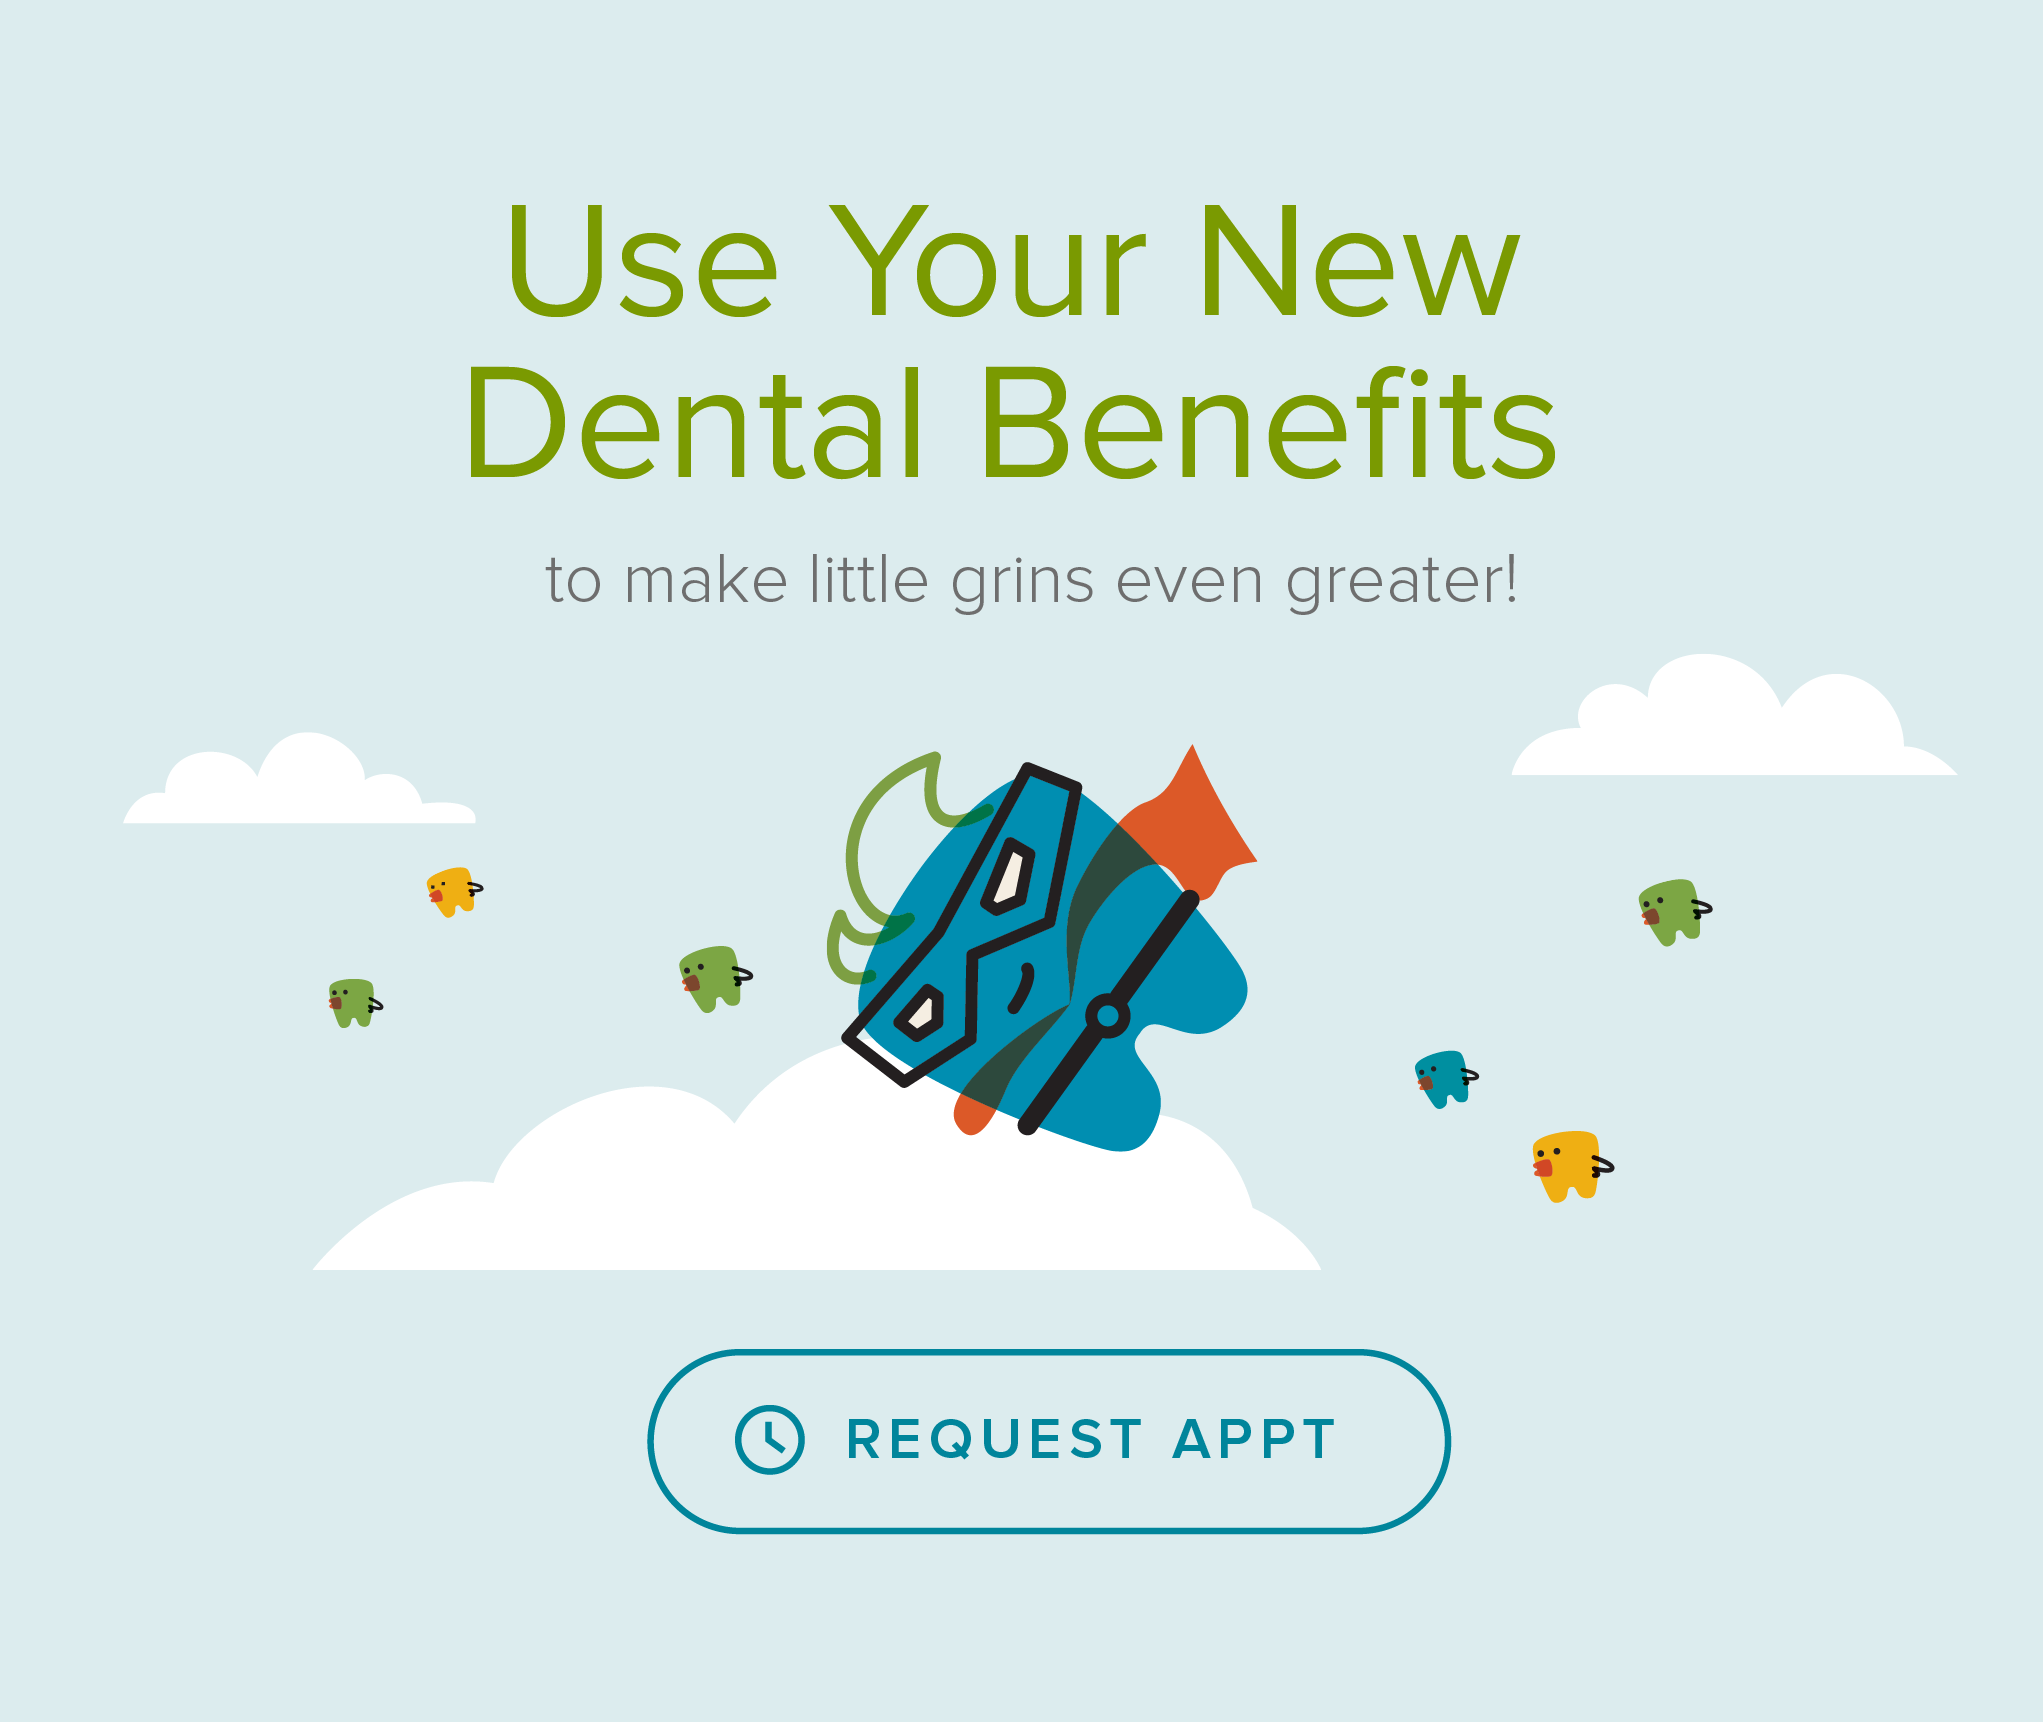 Every Kid's Dentist & Orthodontics - Make the Most of Your Benefits